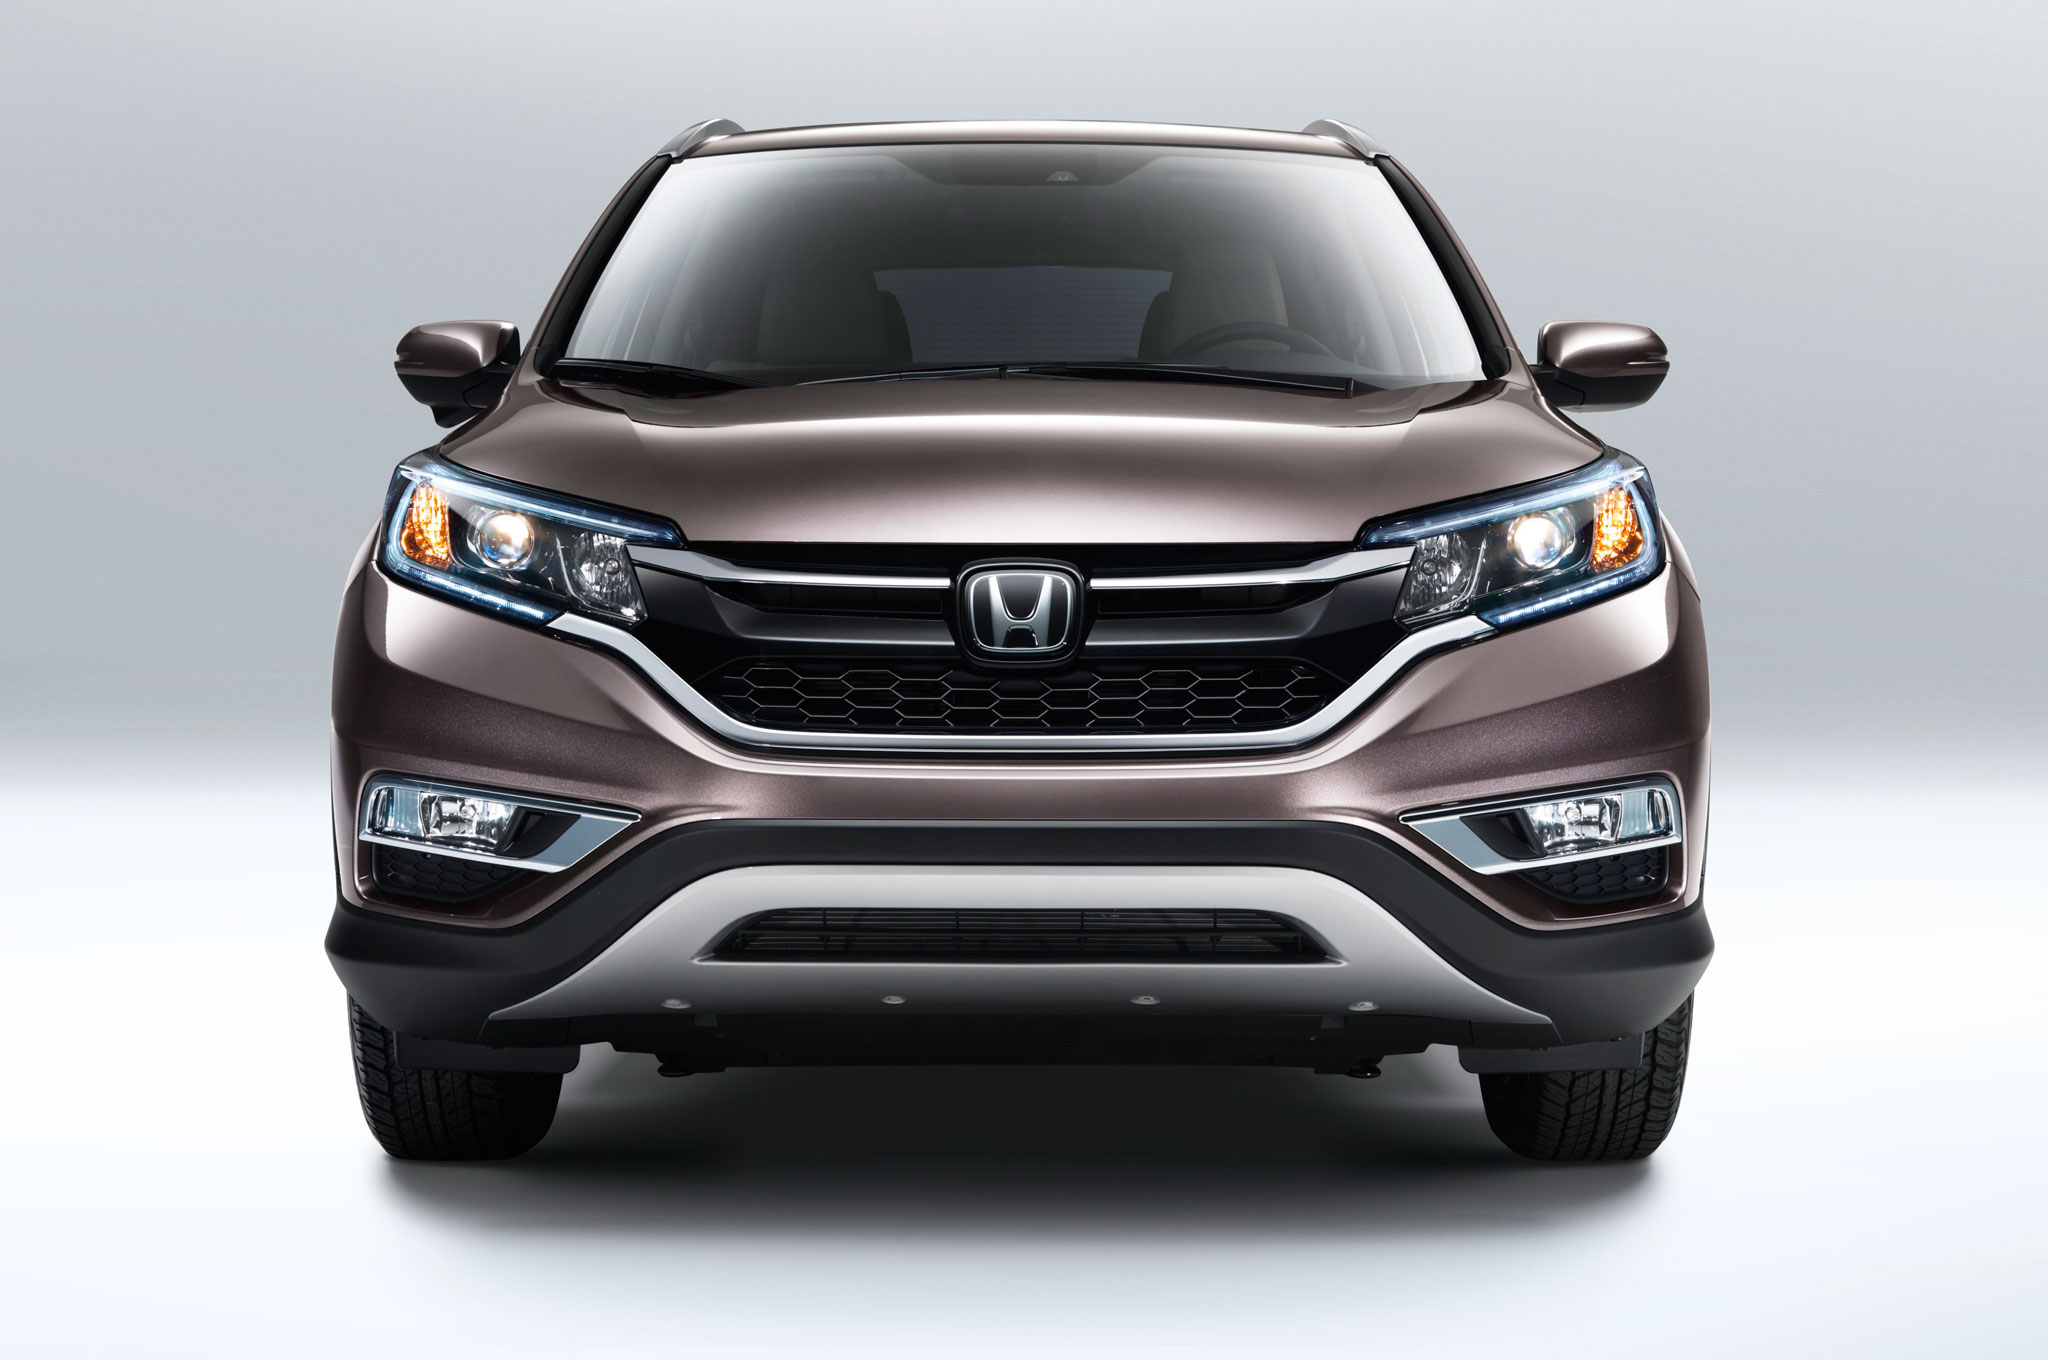 2015 honda cr v refreshed with new engine improved mpg. Black Bedroom Furniture Sets. Home Design Ideas